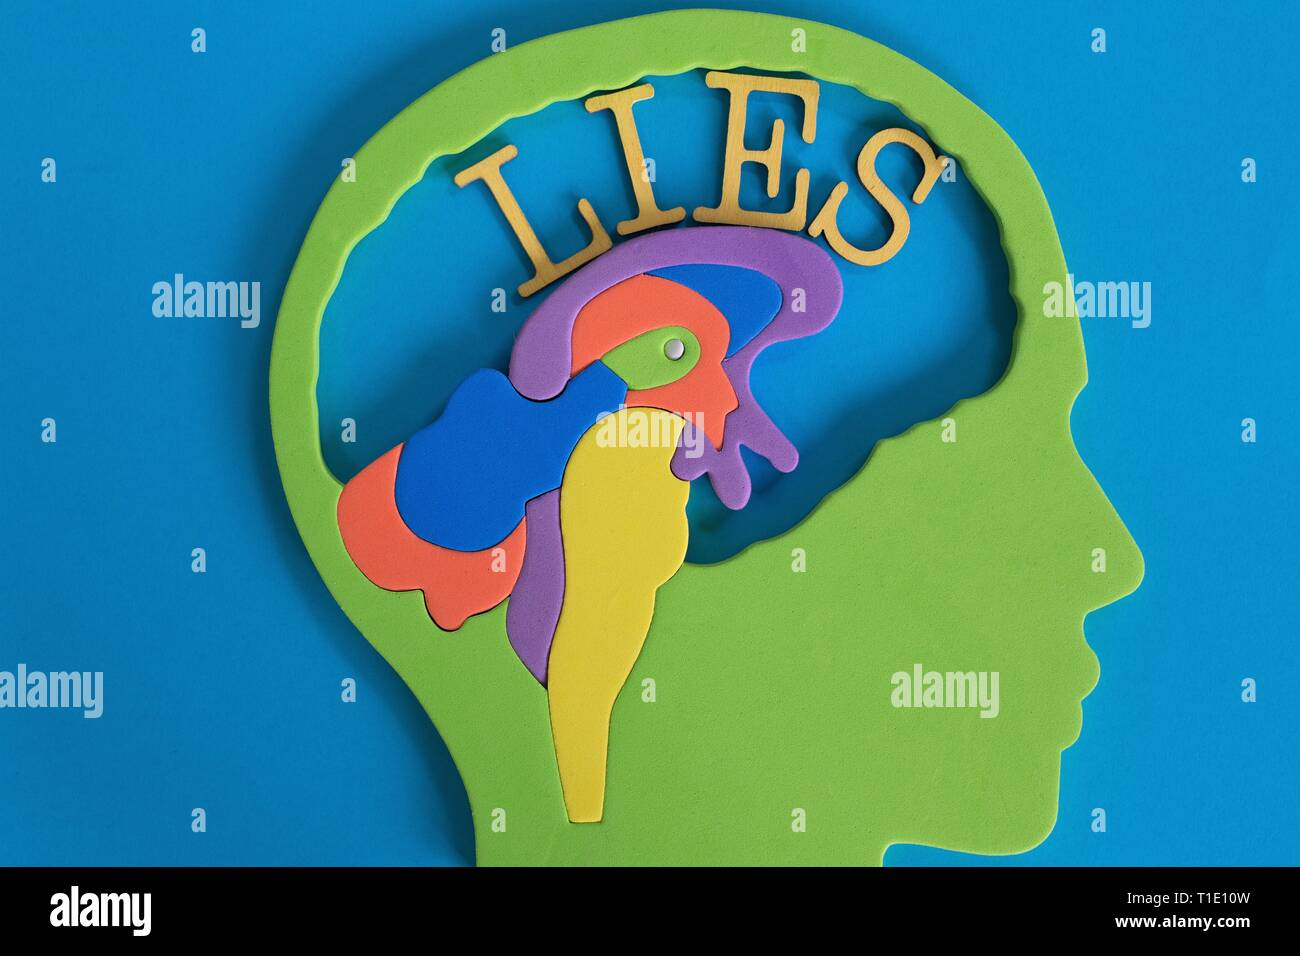 Conceptual image illustrating the mind of a liar. - Stock Image